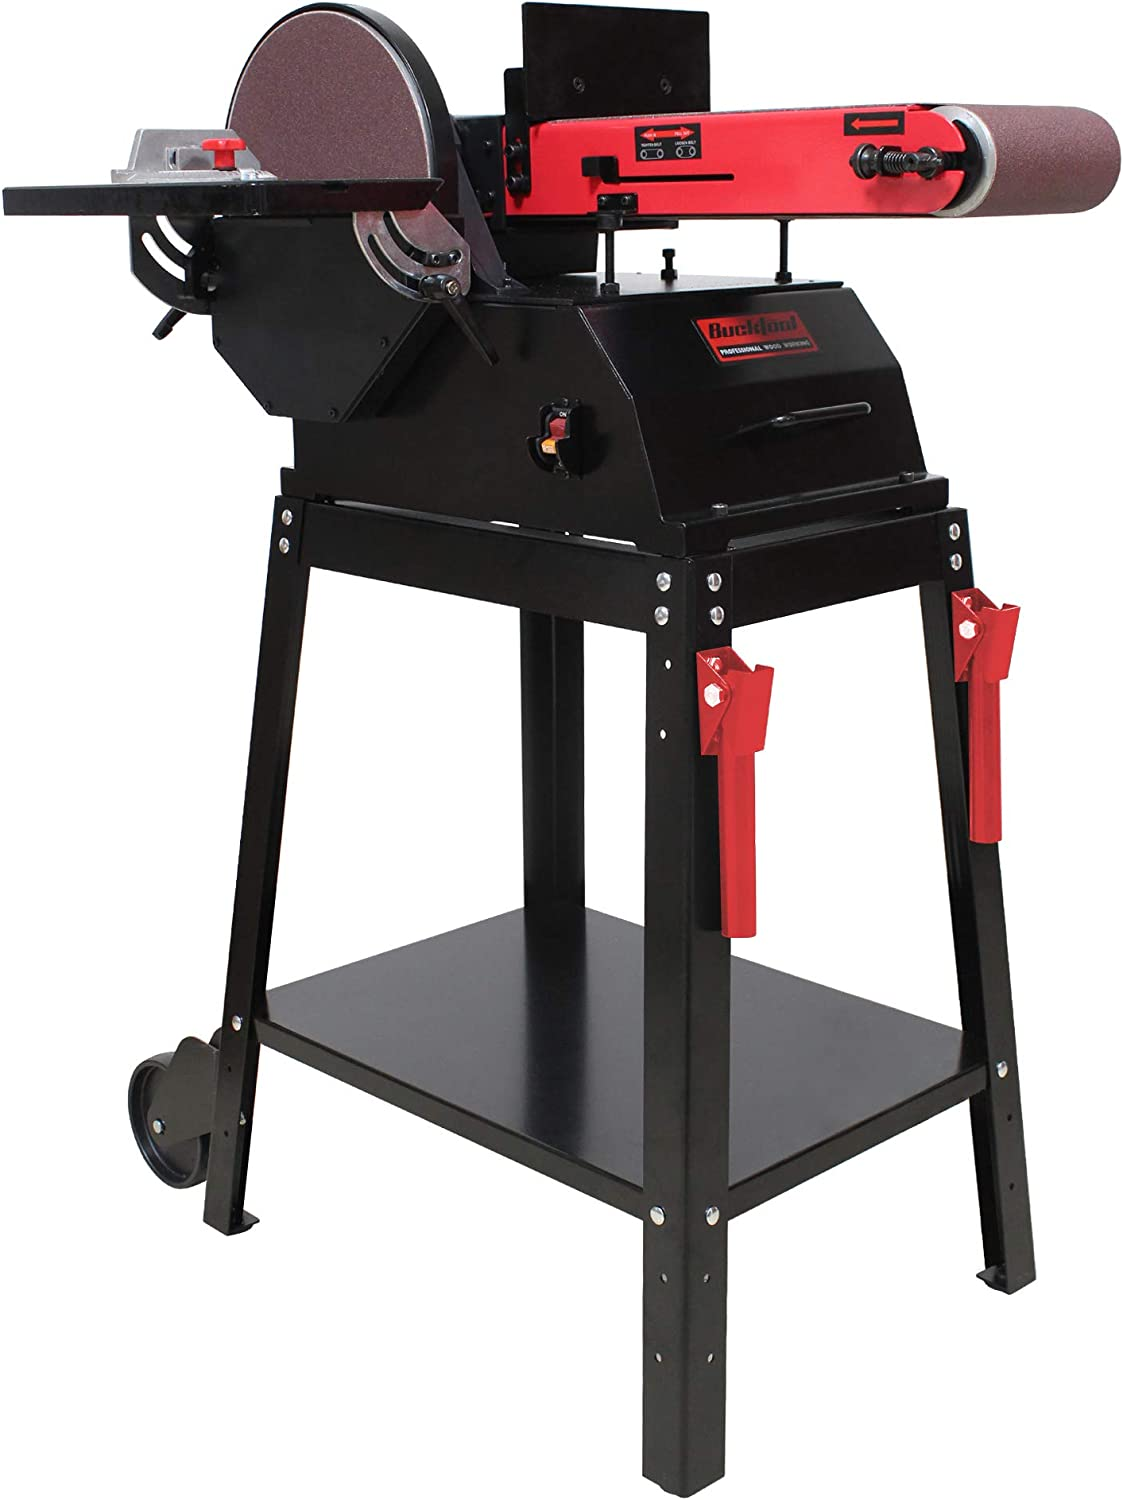 BUCKTOOL Powerful 1.5 HP Bench Belt 6 Wood Sander in Reservation for discount Working